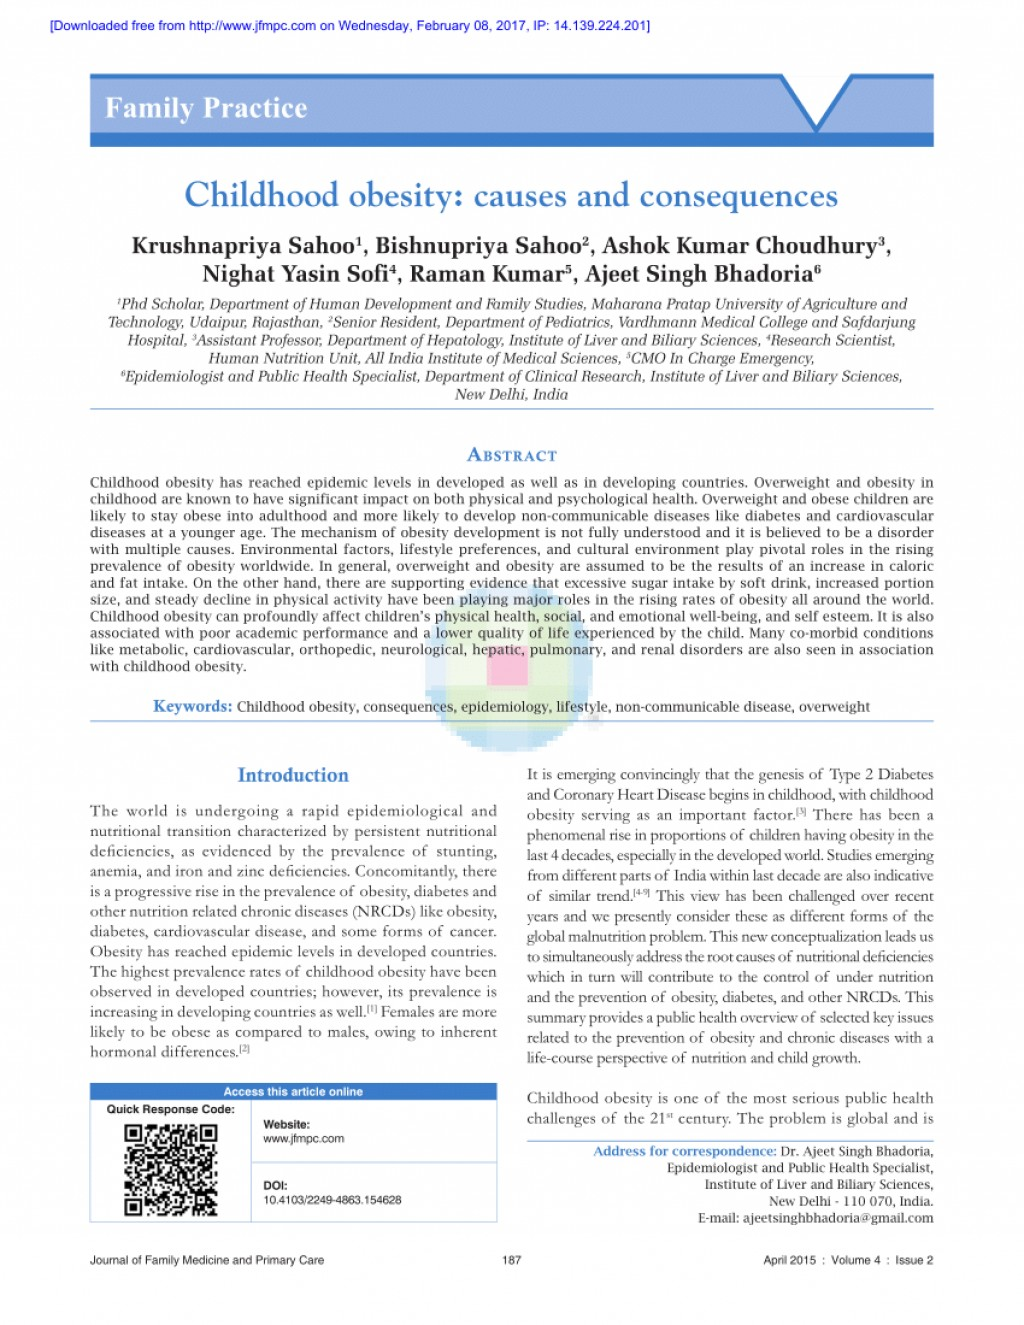 005 Primary Research Article On Childhood Obesity Largepreview Imposing Large